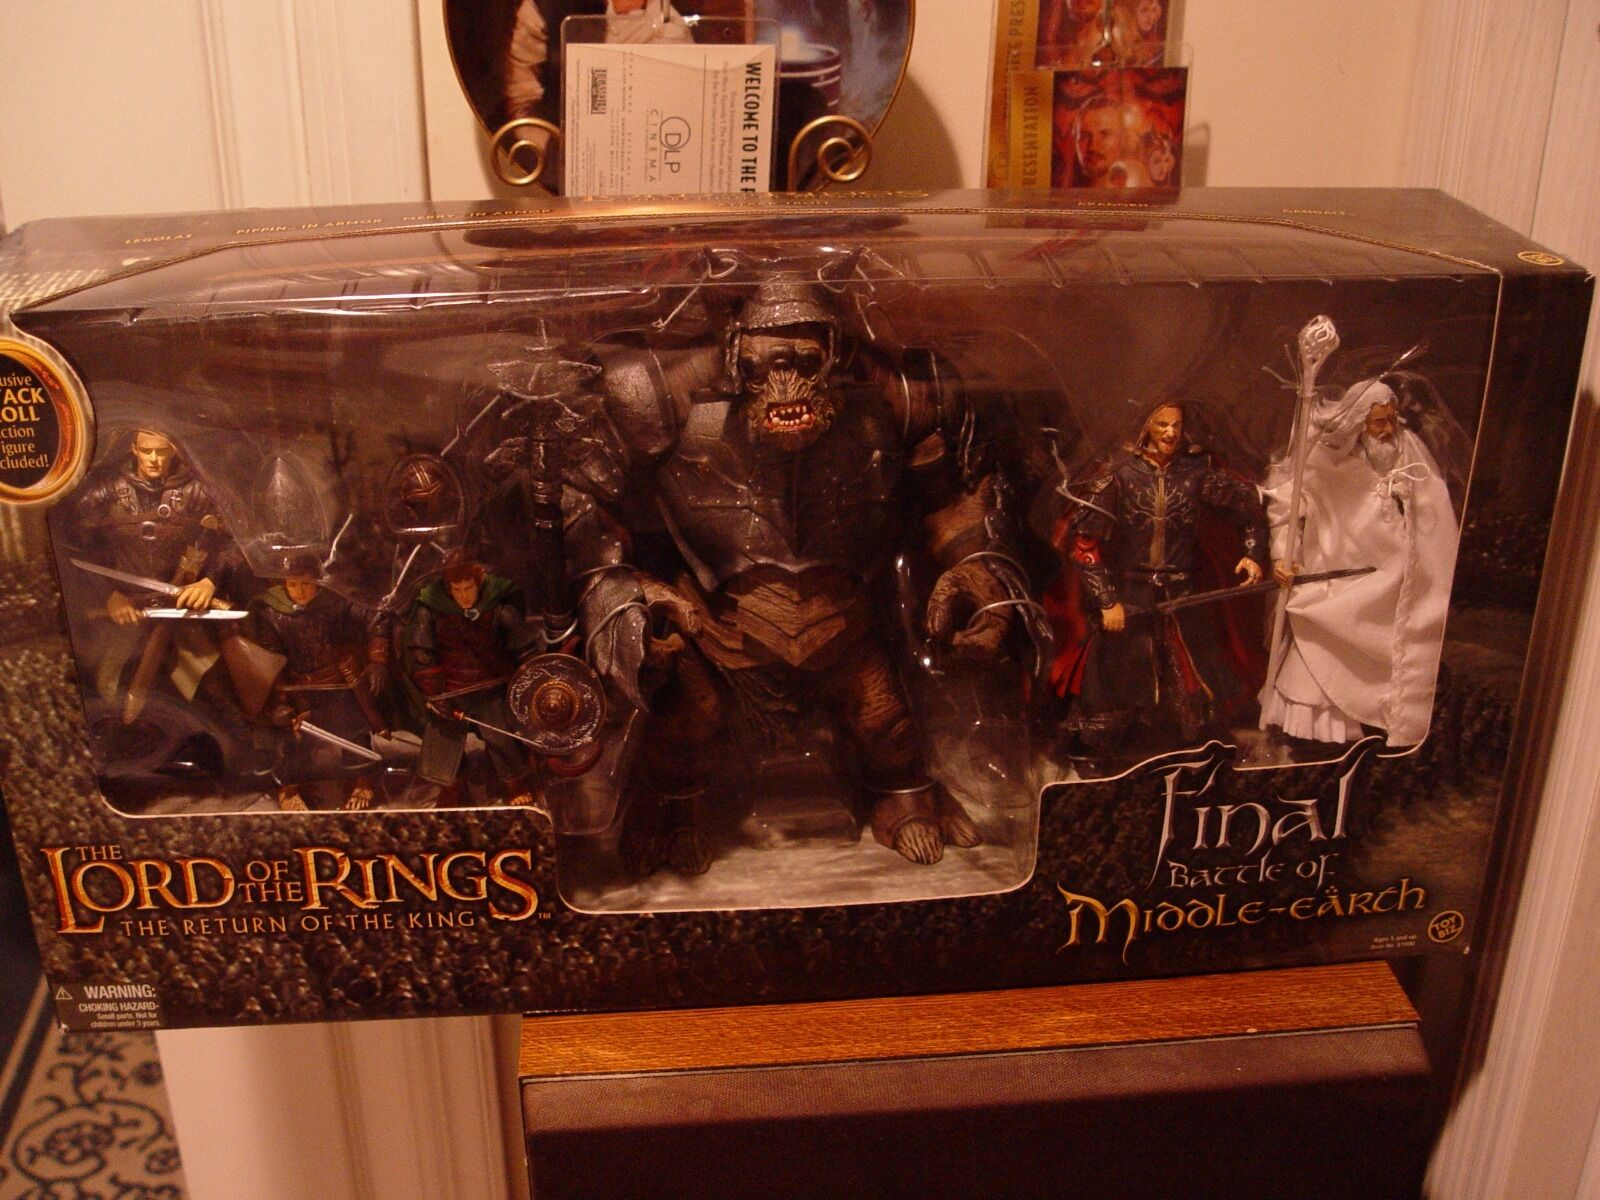 Toy Biz Lord of the Rings Final Battle for Middle Earth (2003) MIB